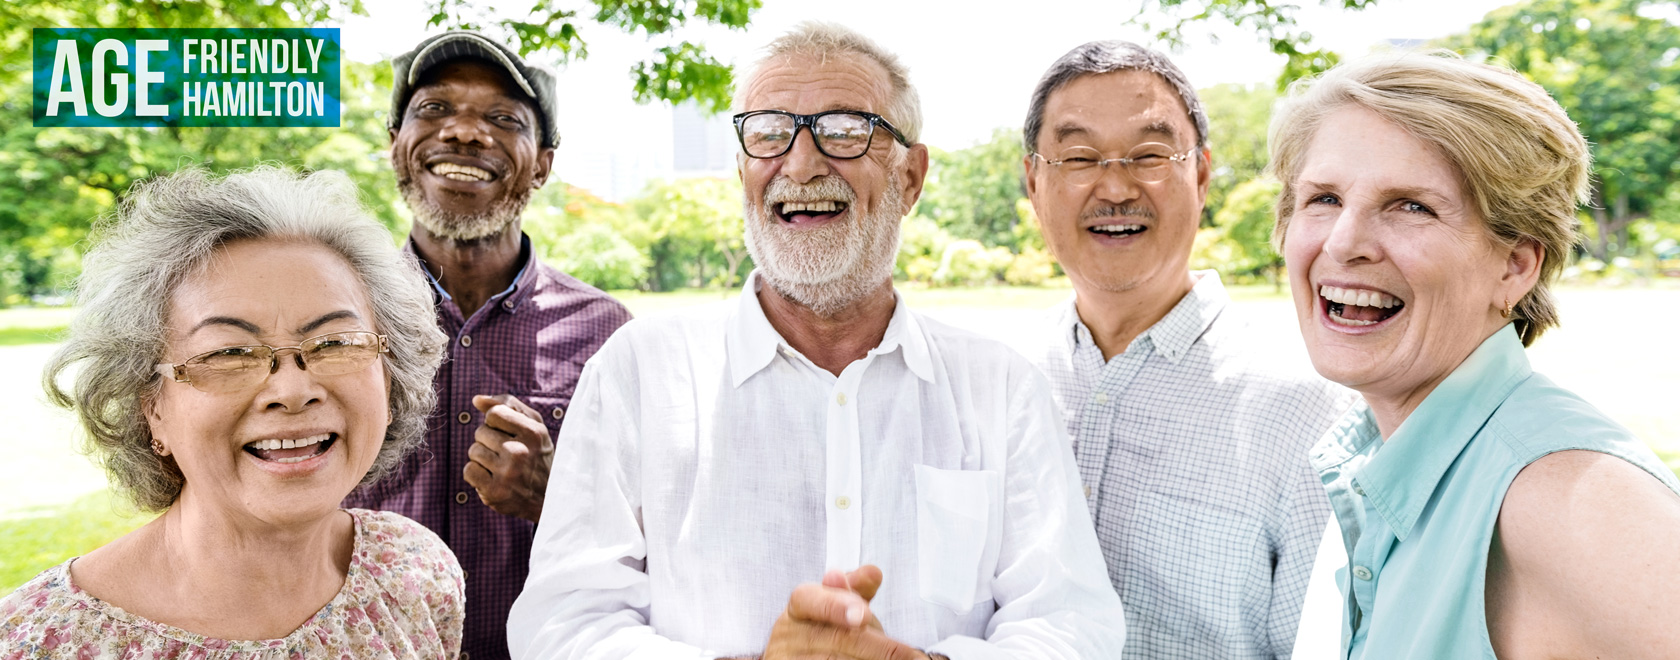 Group of older adults smiling in a park setting